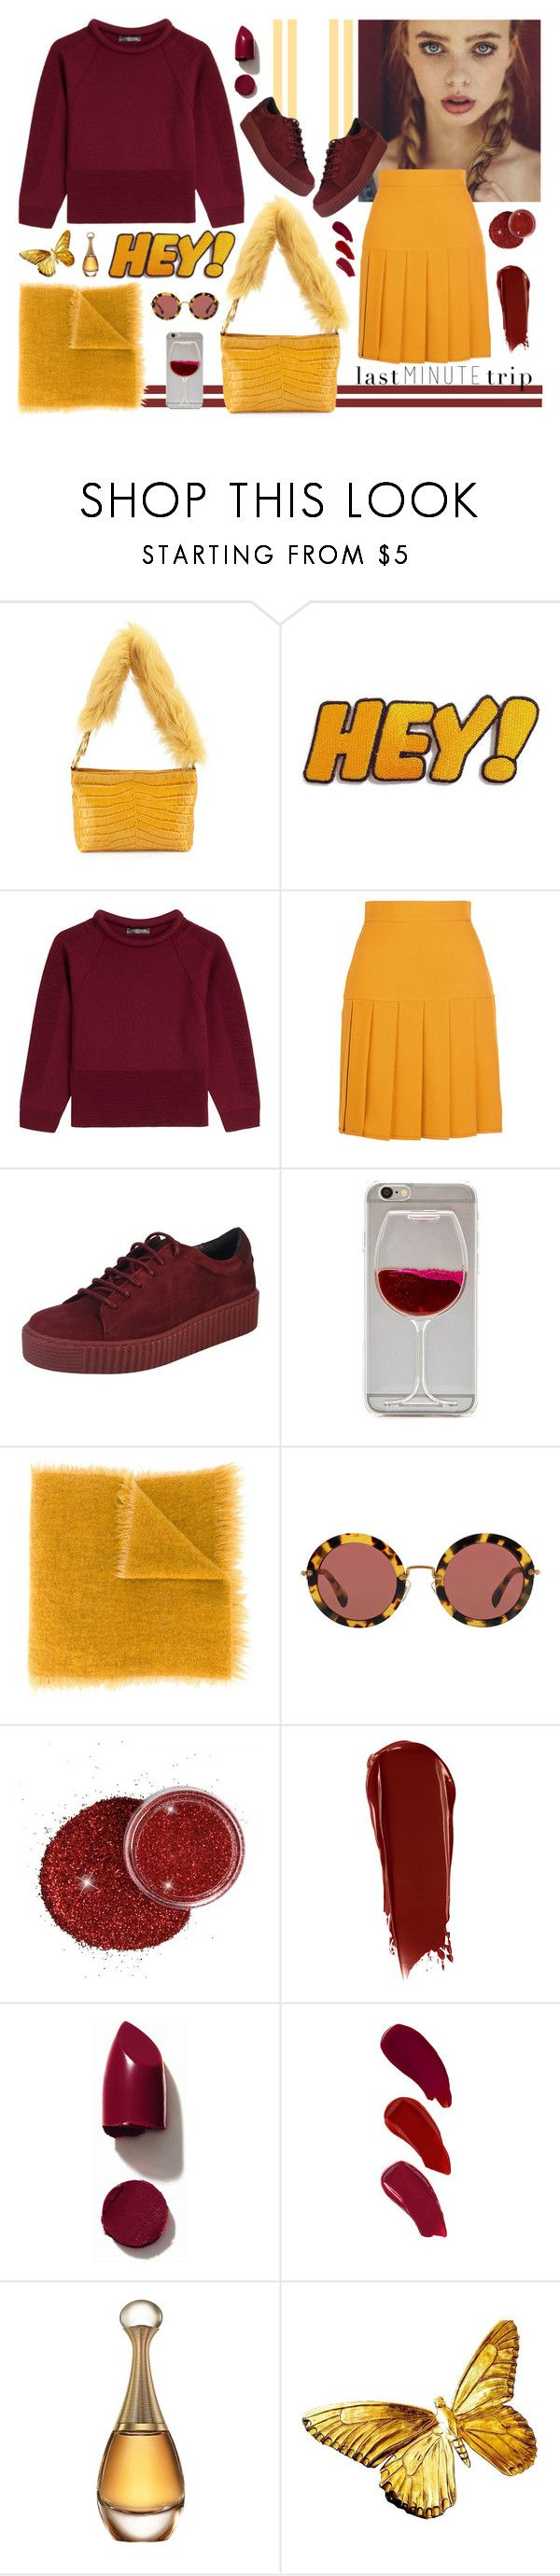 """""""Quick Fashionable"""" by elisahupkes ❤ liked on Polyvore featuring Elizabeth and James, Alexander McQueen, Gucci, Faliero Sarti, Miu Miu, NARS Cosmetics, Ellis Faas, Christian Dior and lastminutetrip"""